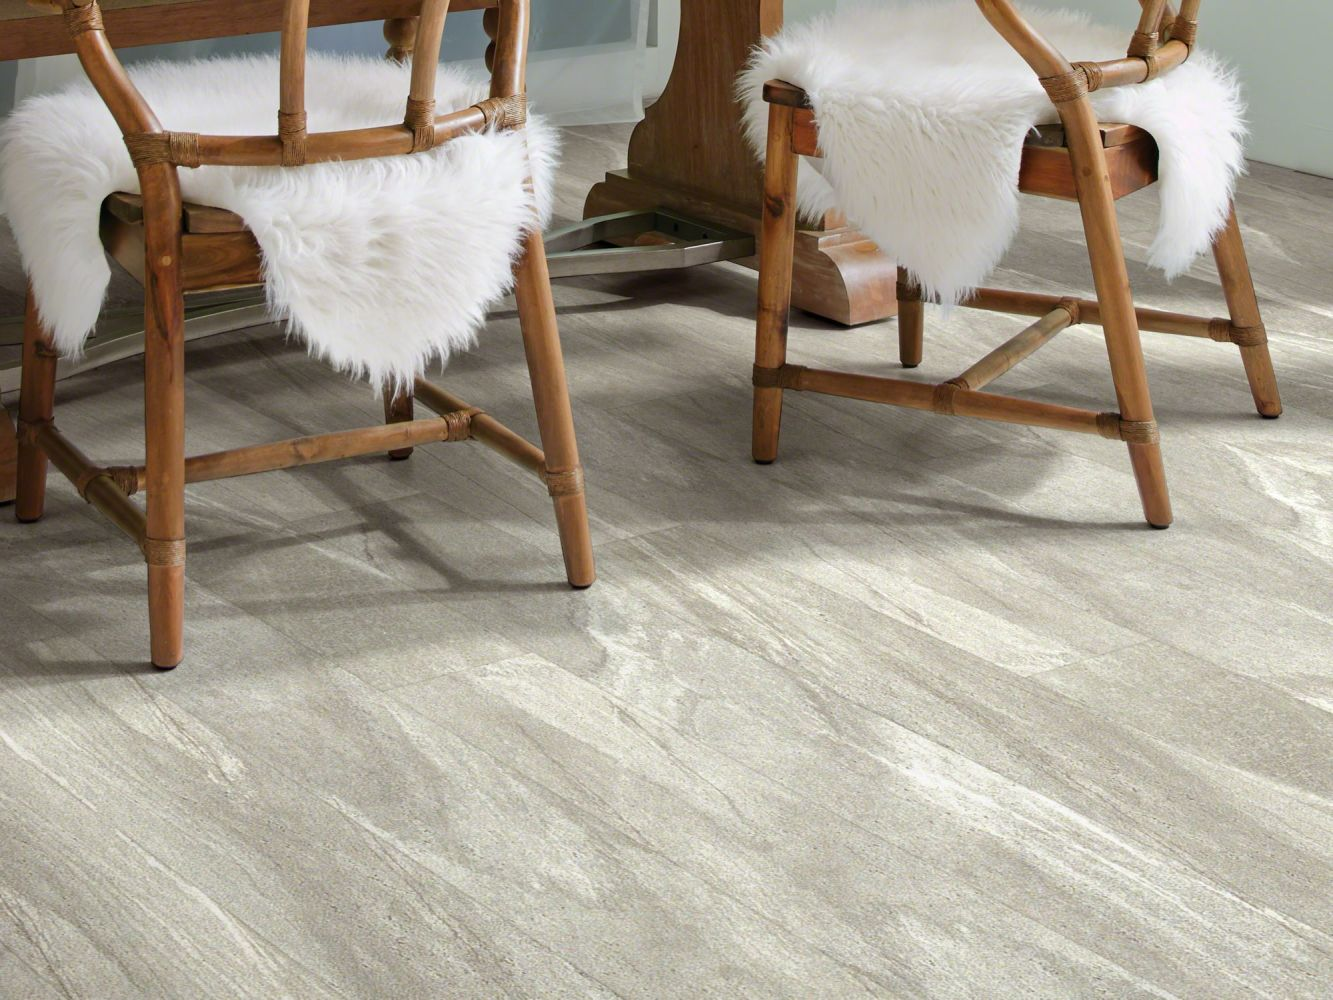 Shaw Floors Resilient Residential Classico Plus Plank Grigio 00502_2426V